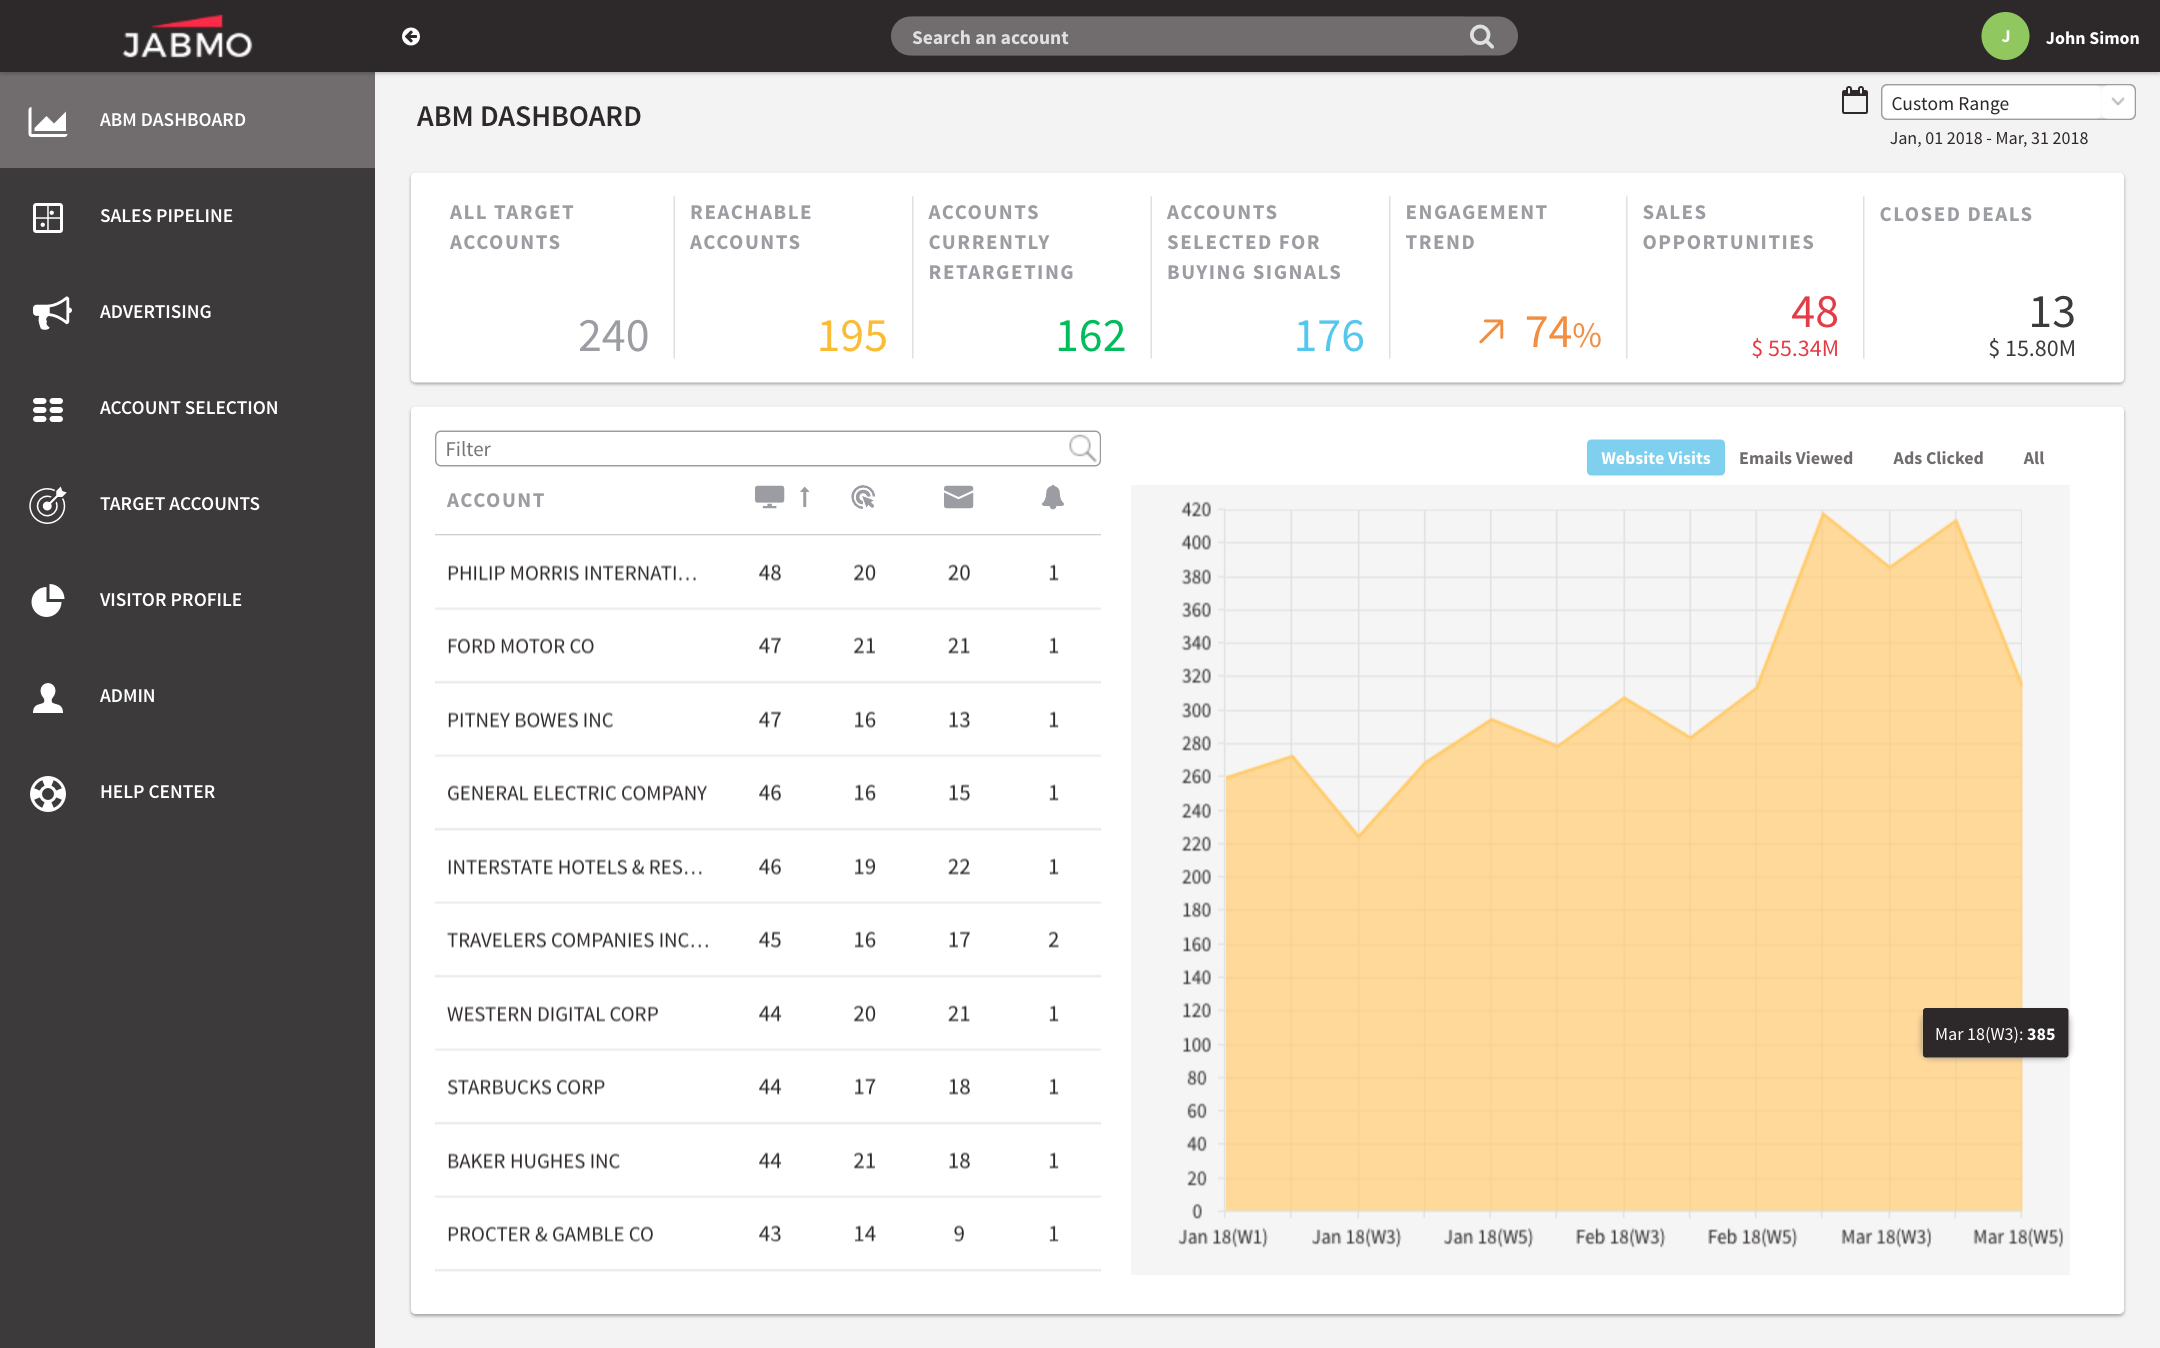 JABMO PLATTEFORM ABM DASHBOARD